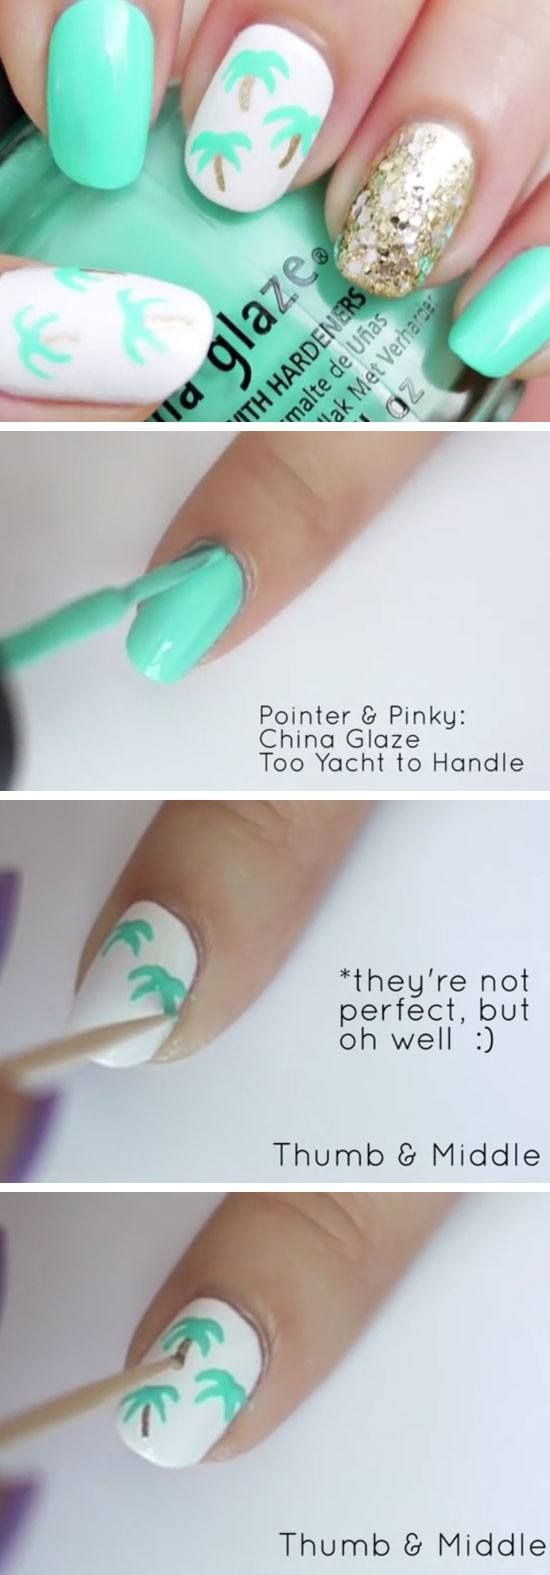 Easy Palm Tree Nail Art | 18 Easy Summer Nails Designs for Summer | Cute Nail Art Ideas for Teens